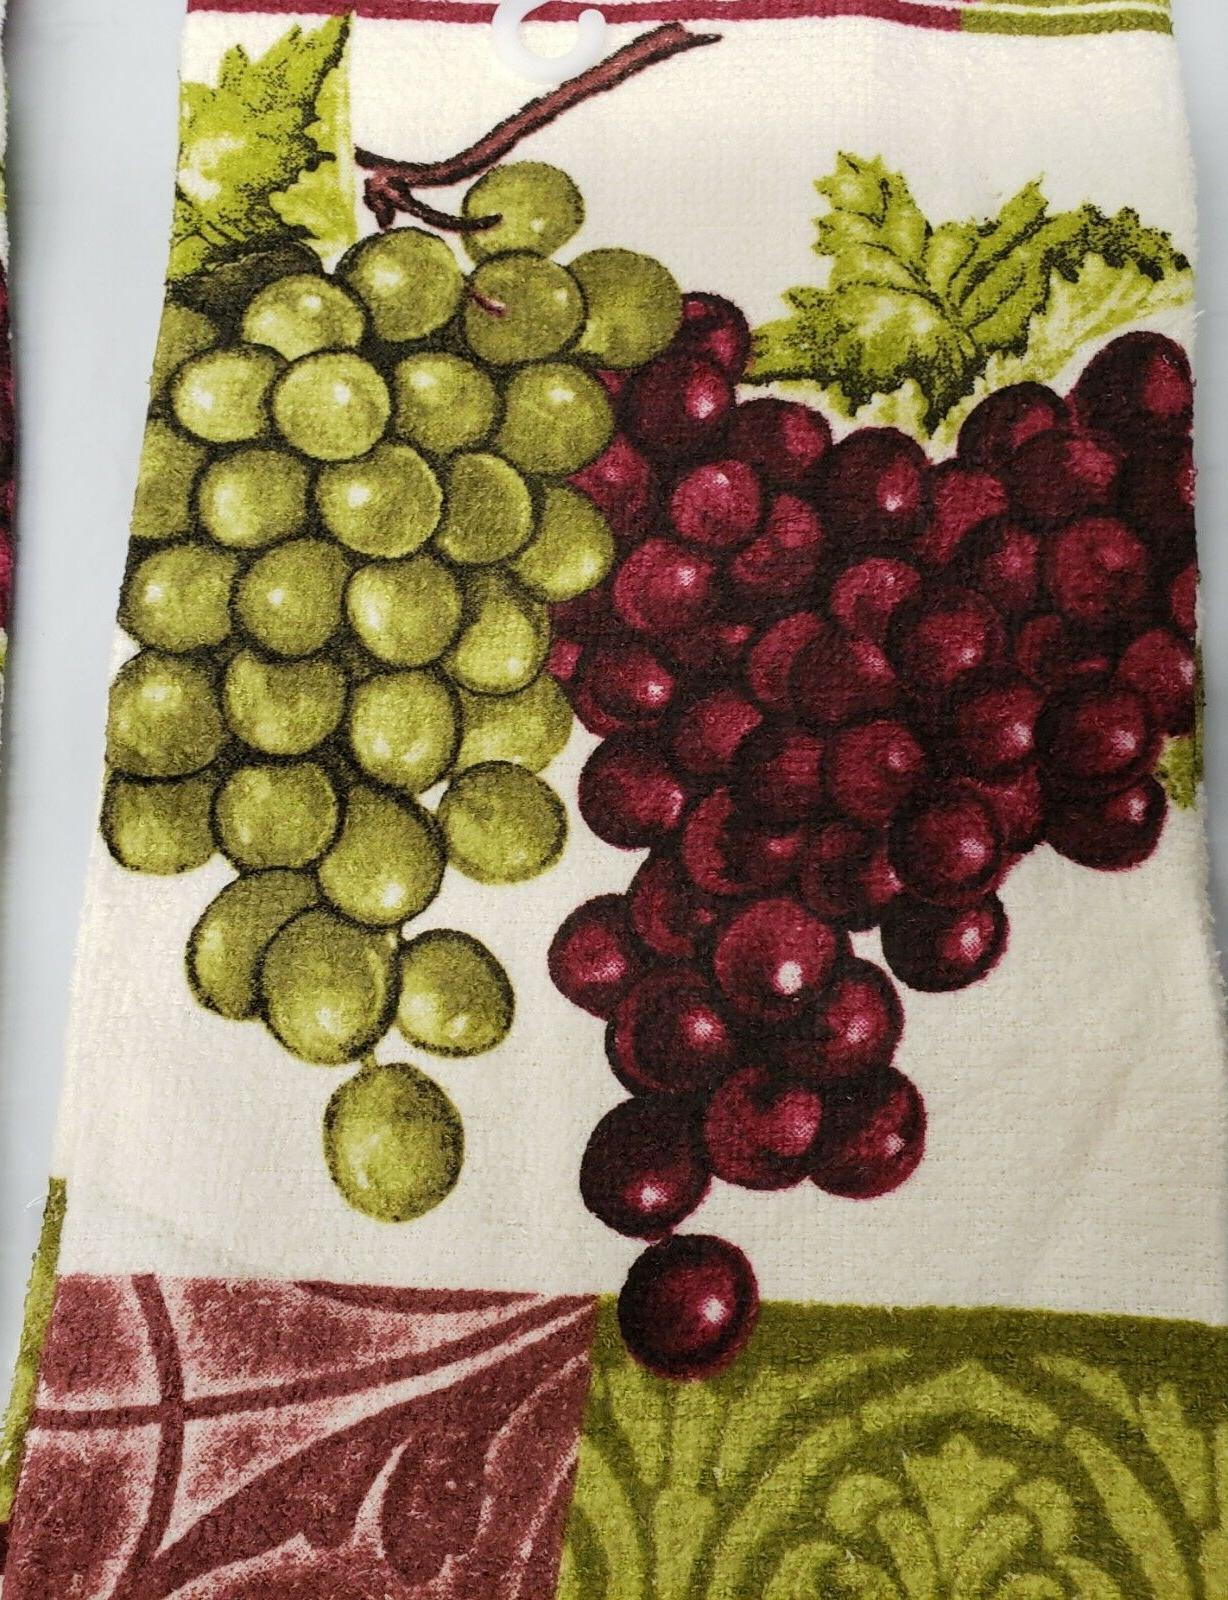 2 PRINTED KITCHEN TOWELS & GRAPES by